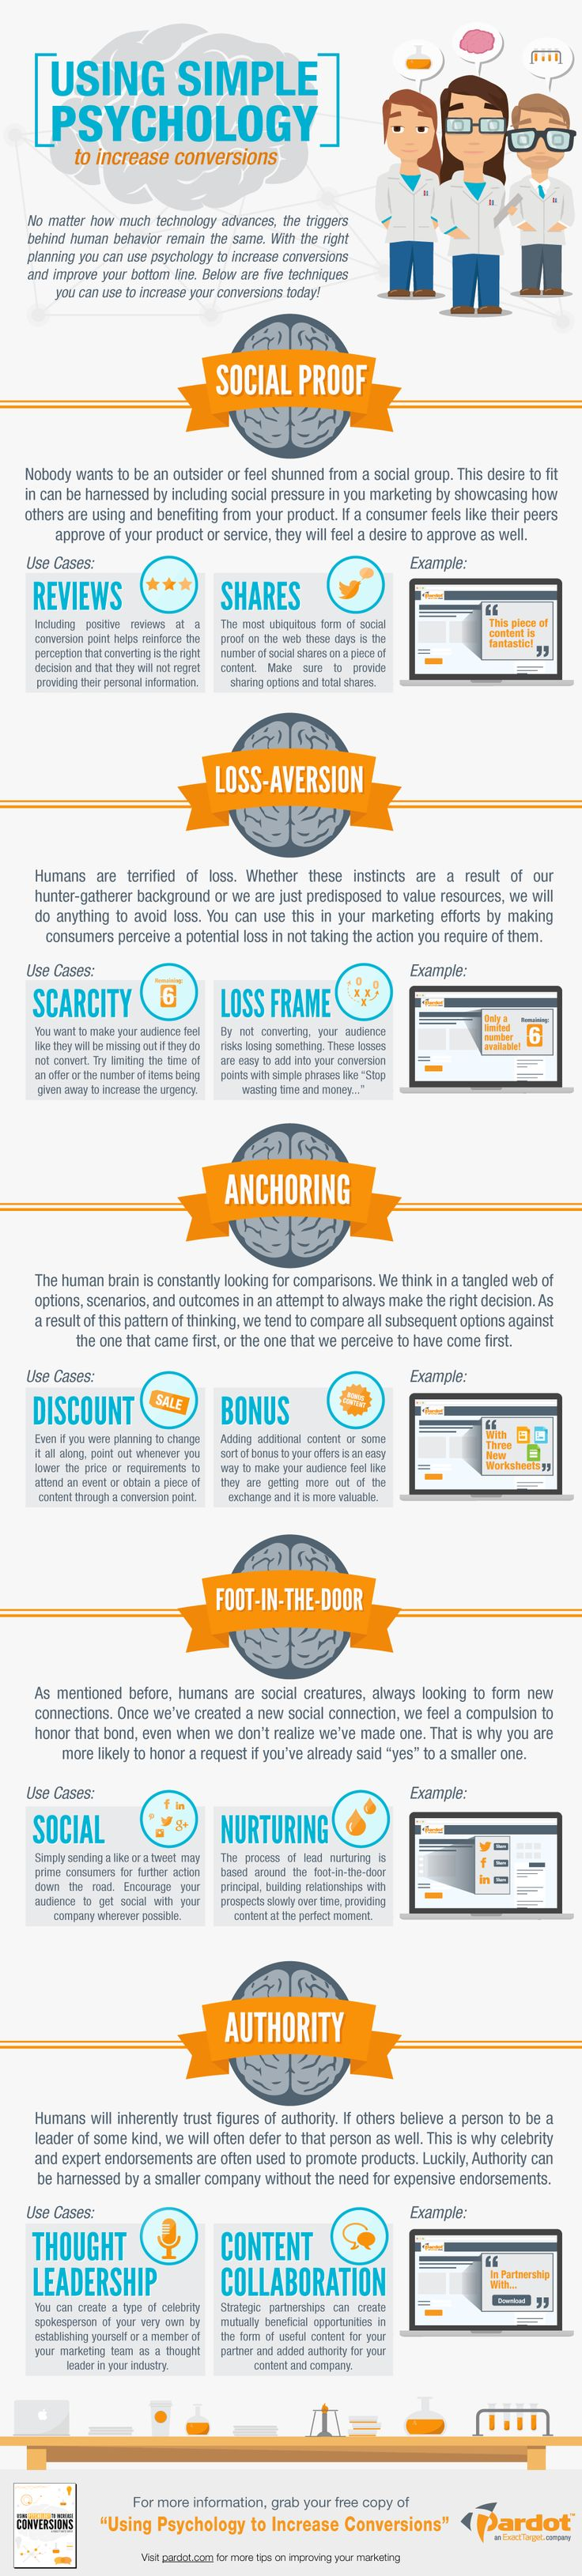 The Psychology of Influence #ecommerce - interesting aspects in this infographic.